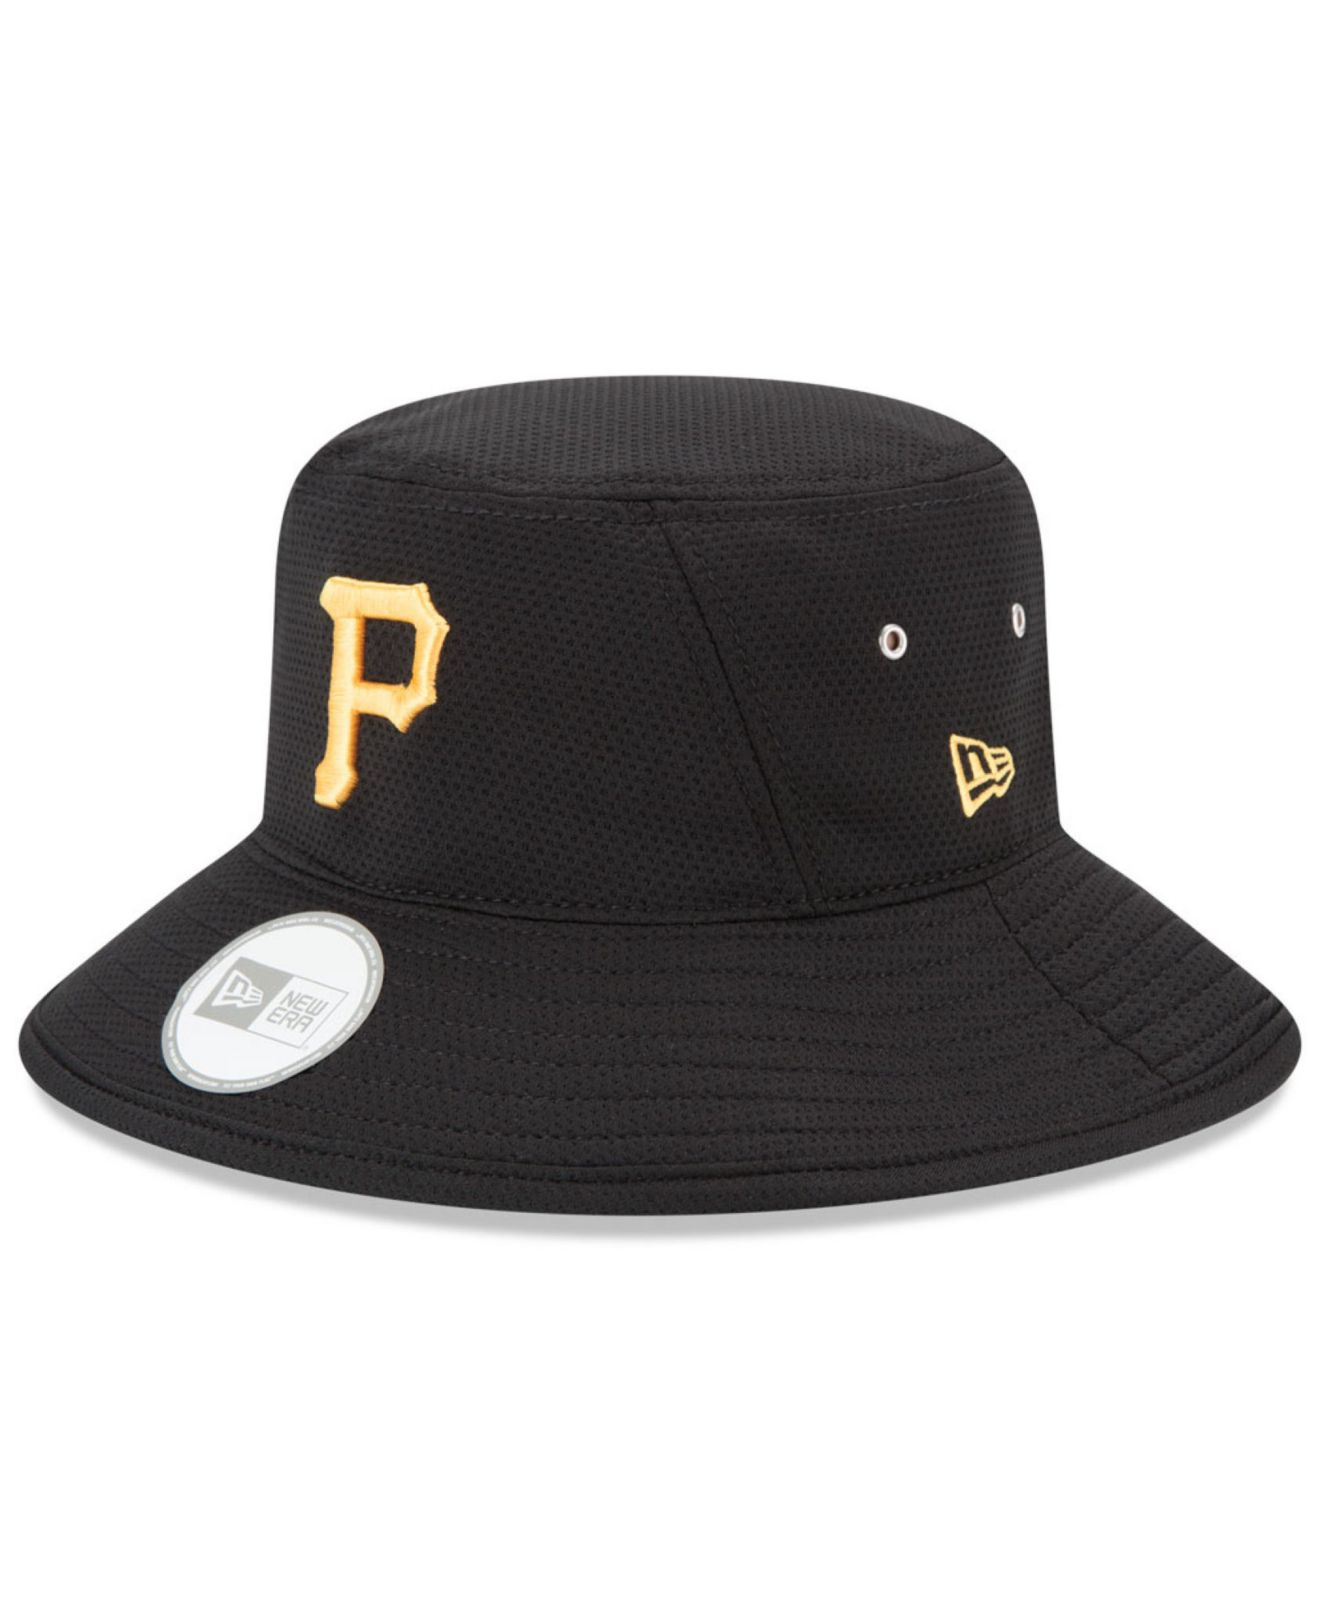 21c4fe1af6a coupon code lyst ktz pittsburgh pirates redux bucket hat in black 70308  fee3e